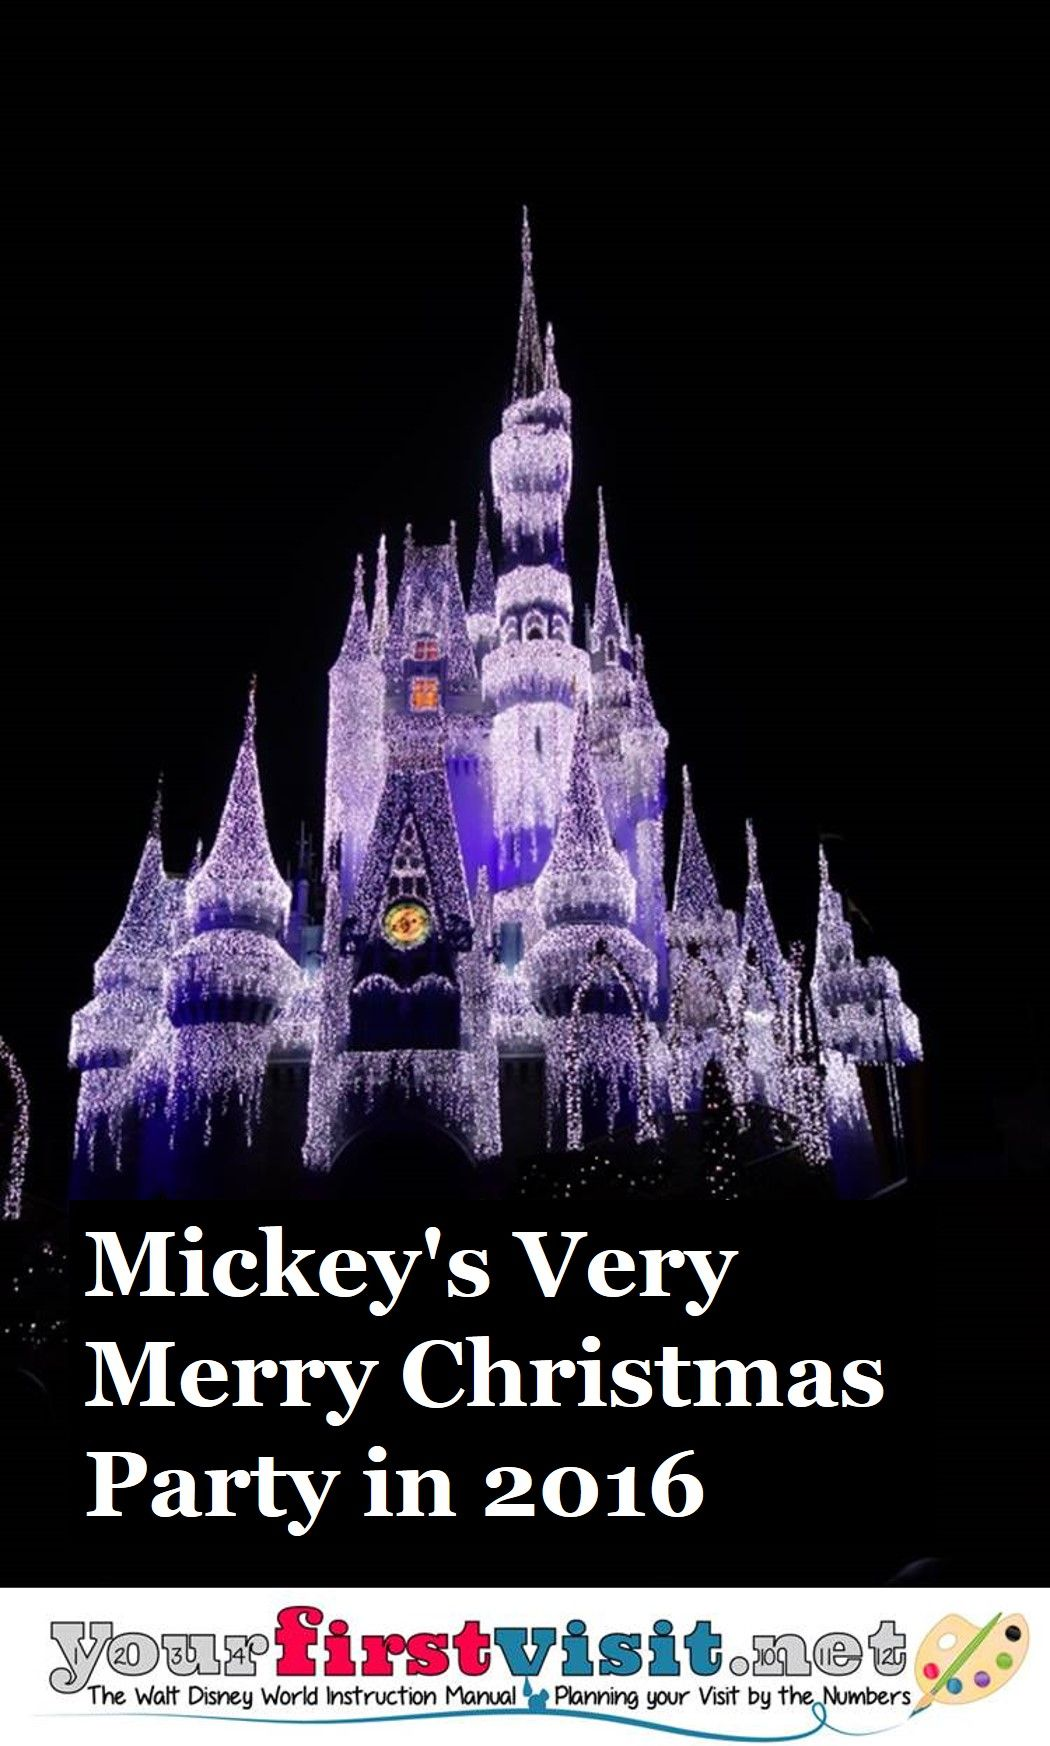 mickeys very merry christmas party in 2016 at disney world the details you need to know from yourfirstvisitnet - Disney Christmas Party 2015